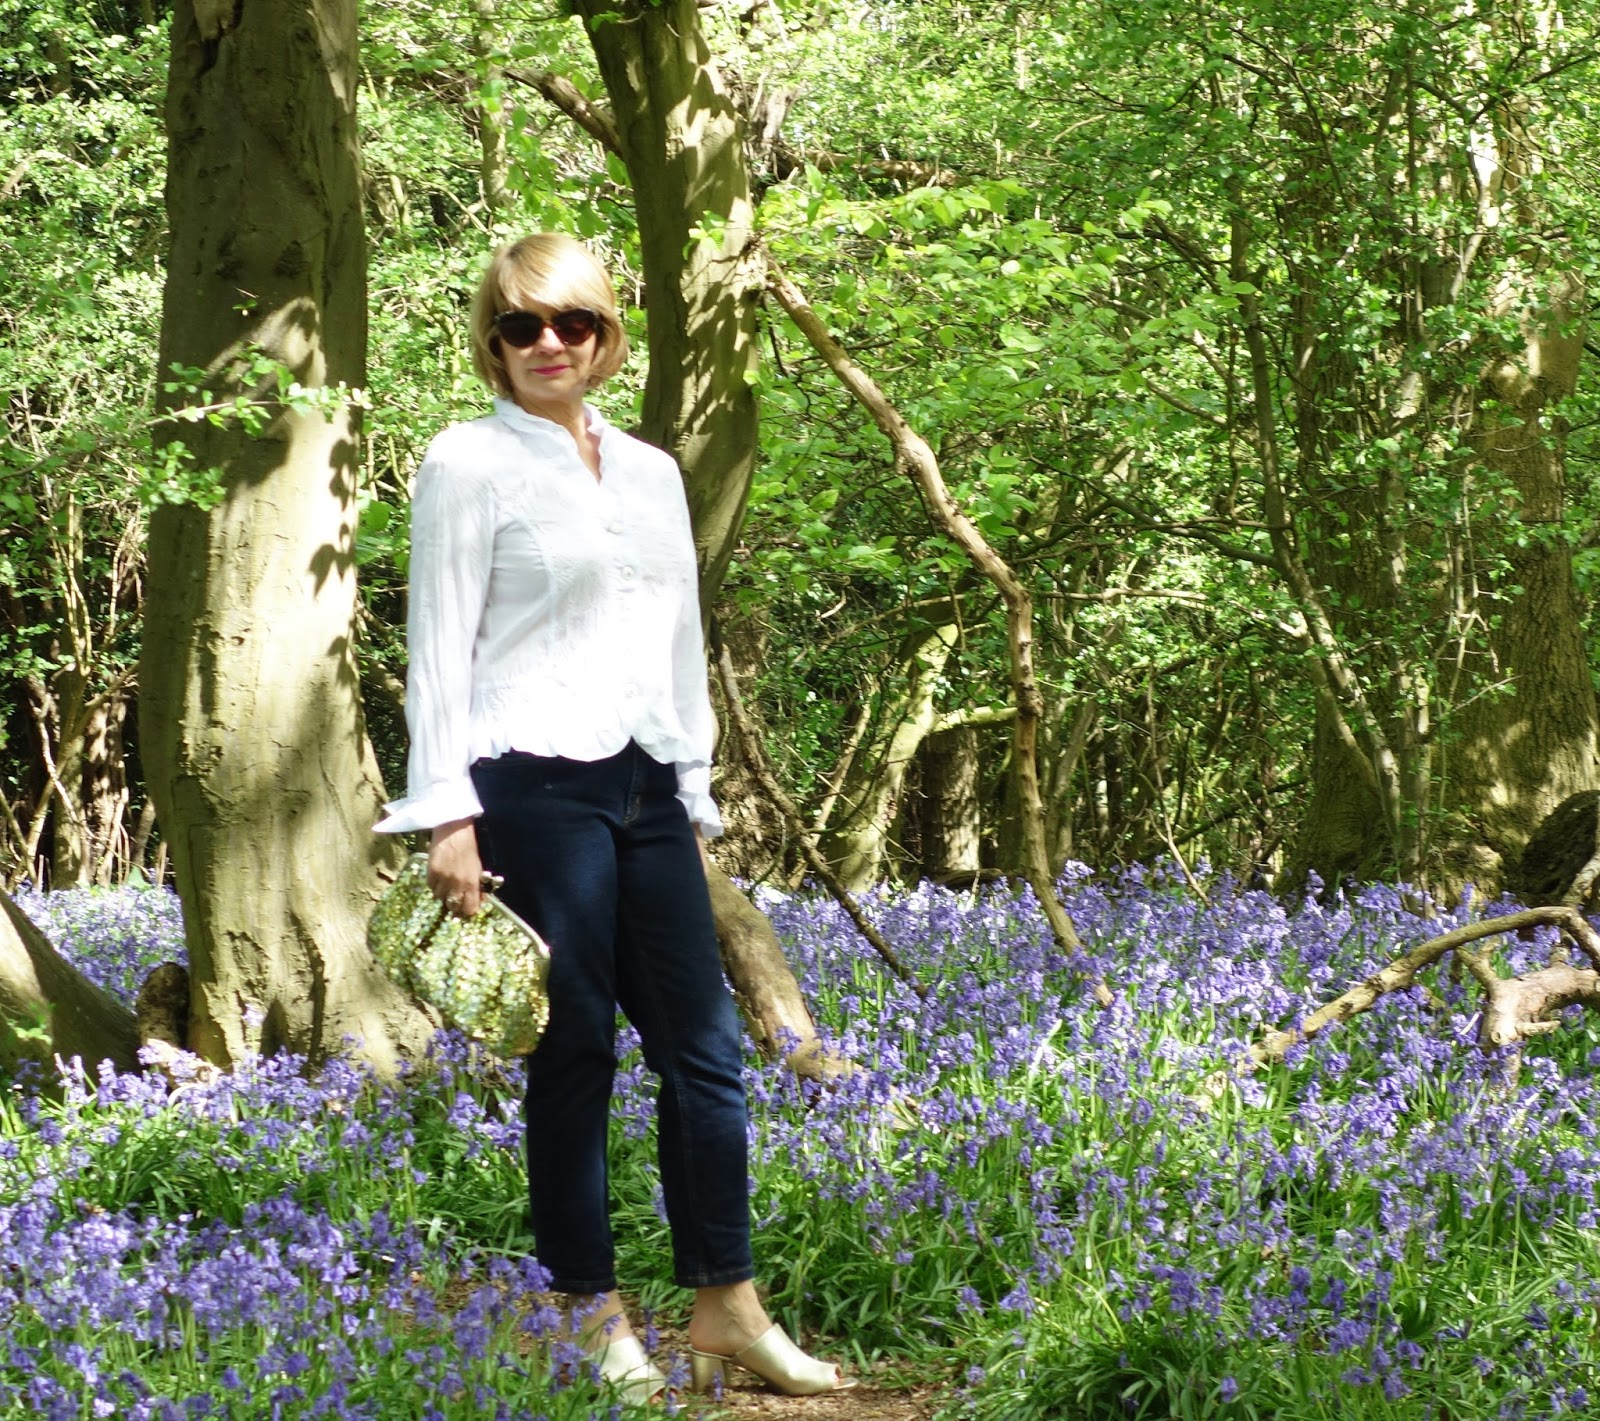 A walk in a bluebell wood as the backdrop for a fashion shoot with Gail Hanlon, blogger